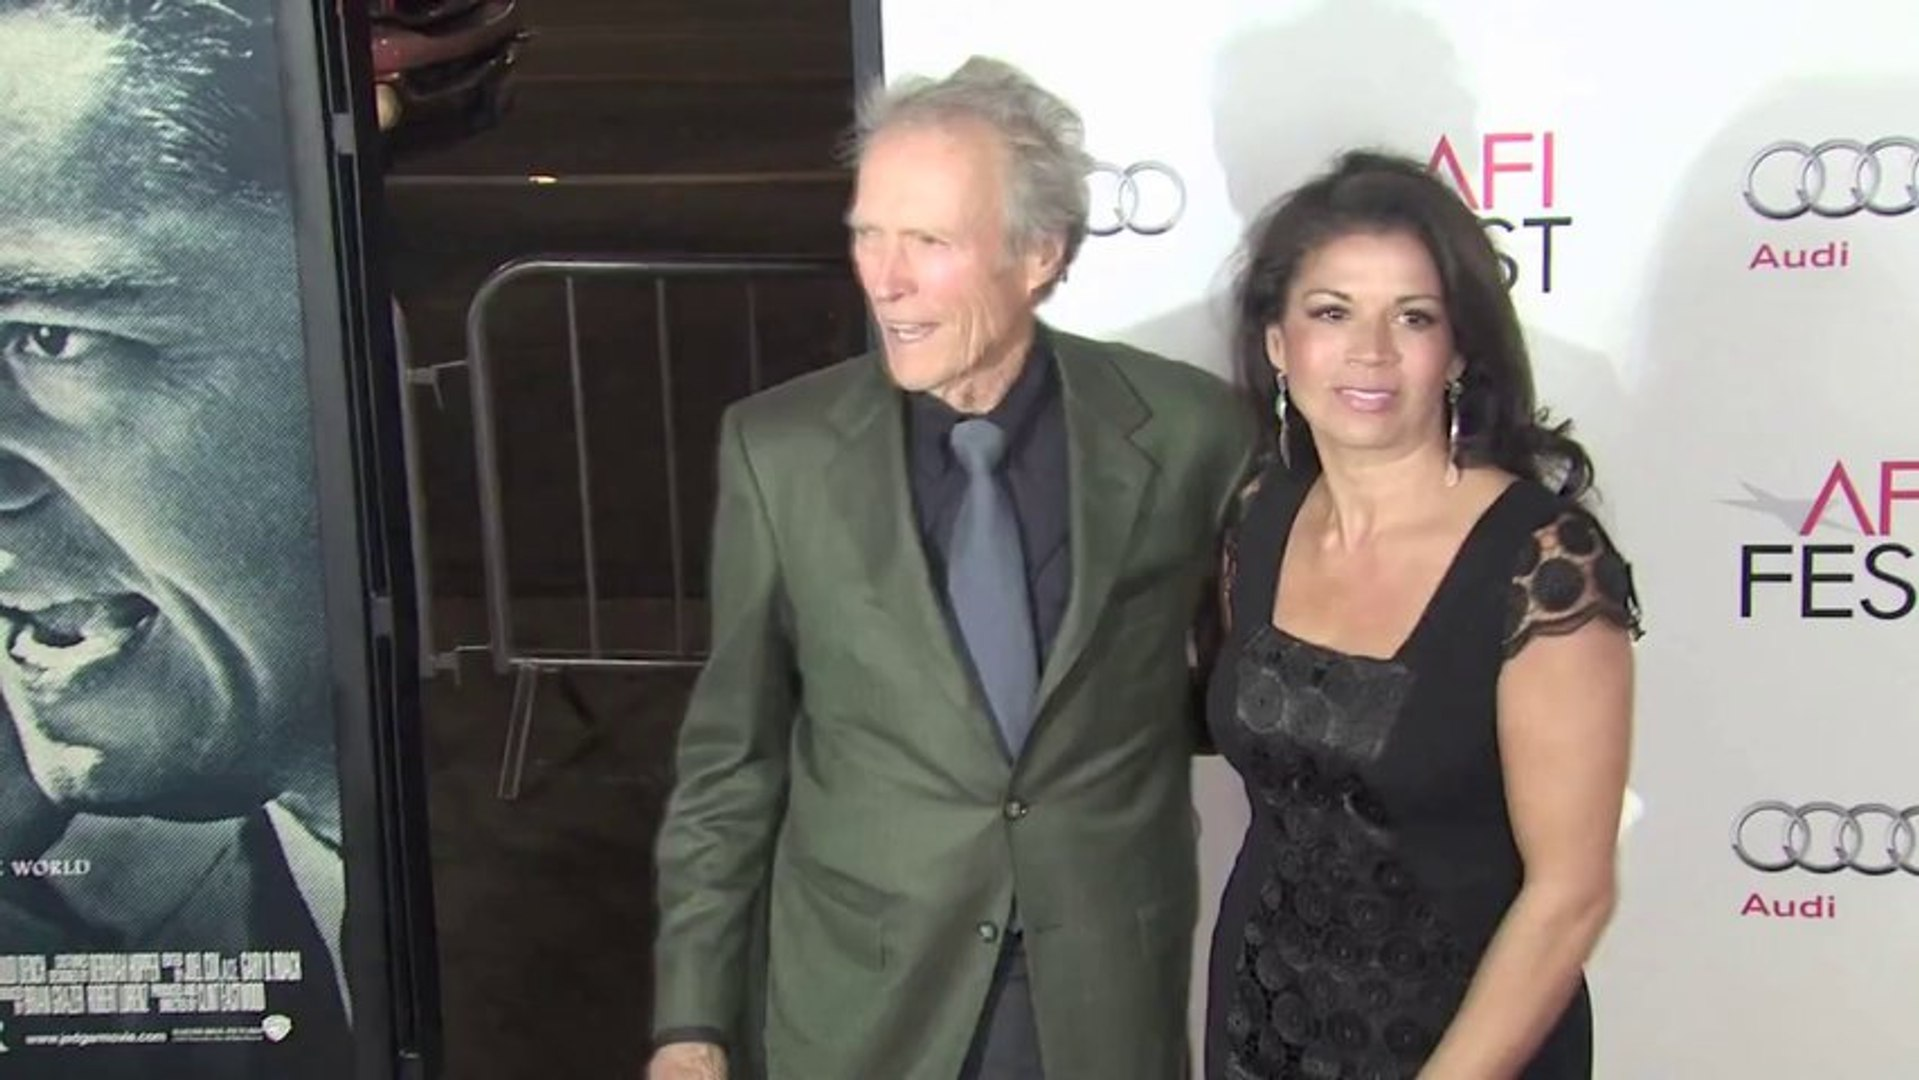 Clint Eastwood's Wife Dina Files For Divorce!